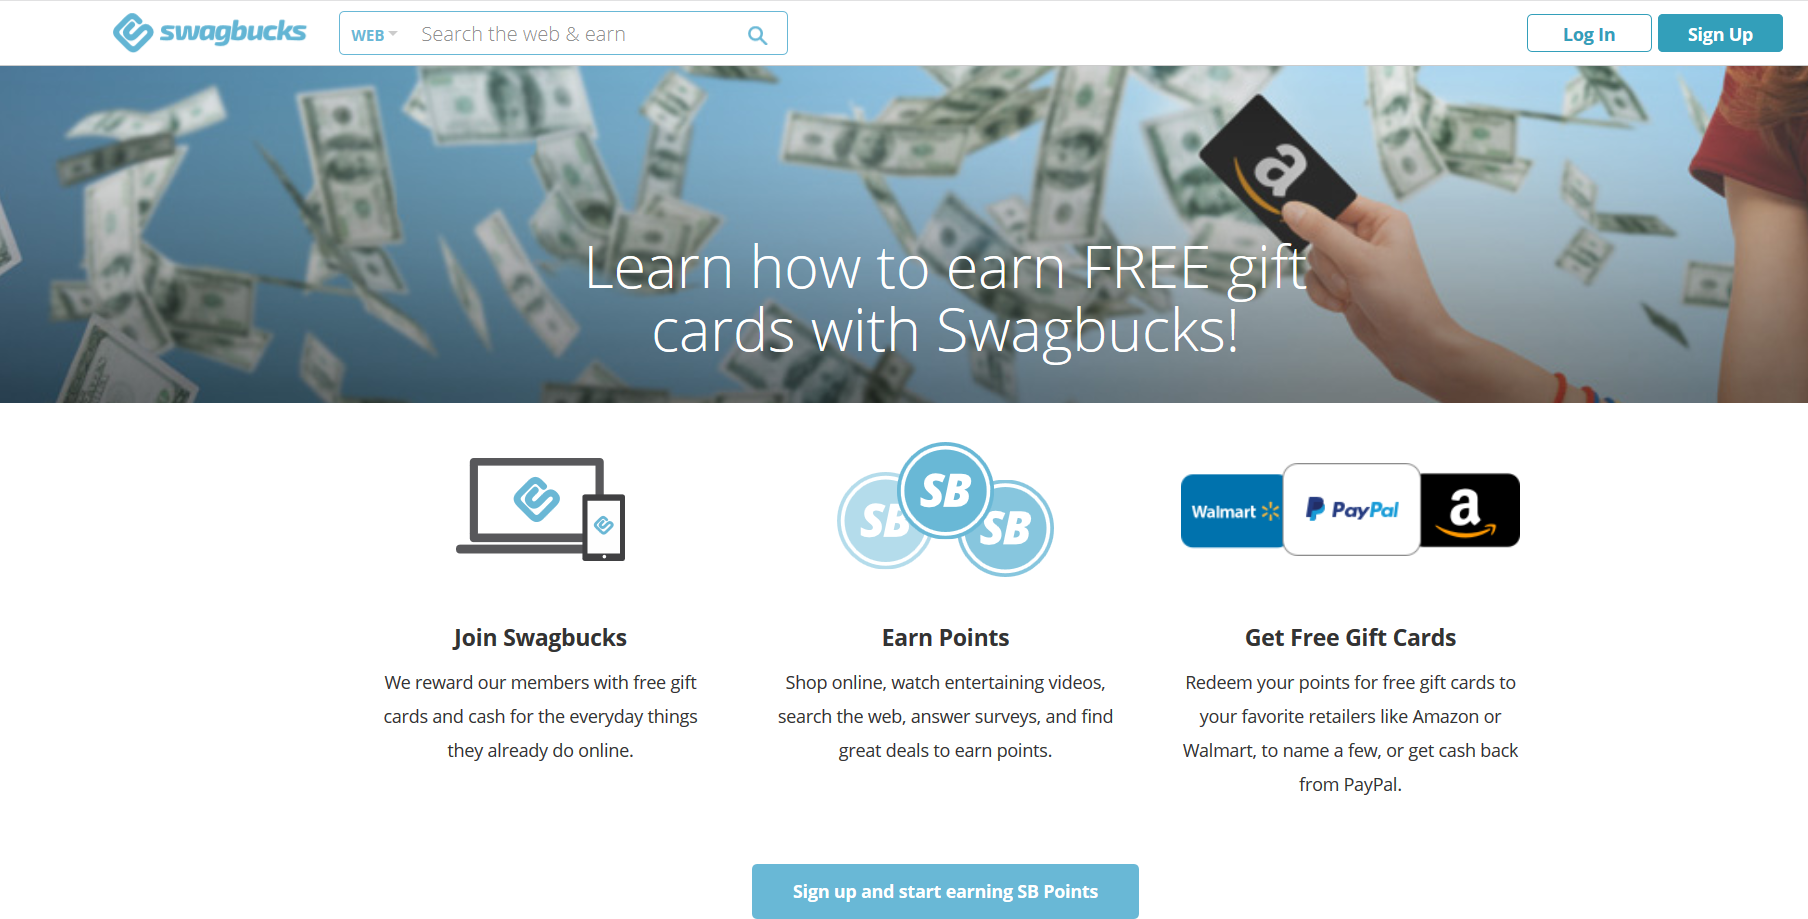 swagbucks review - how it works